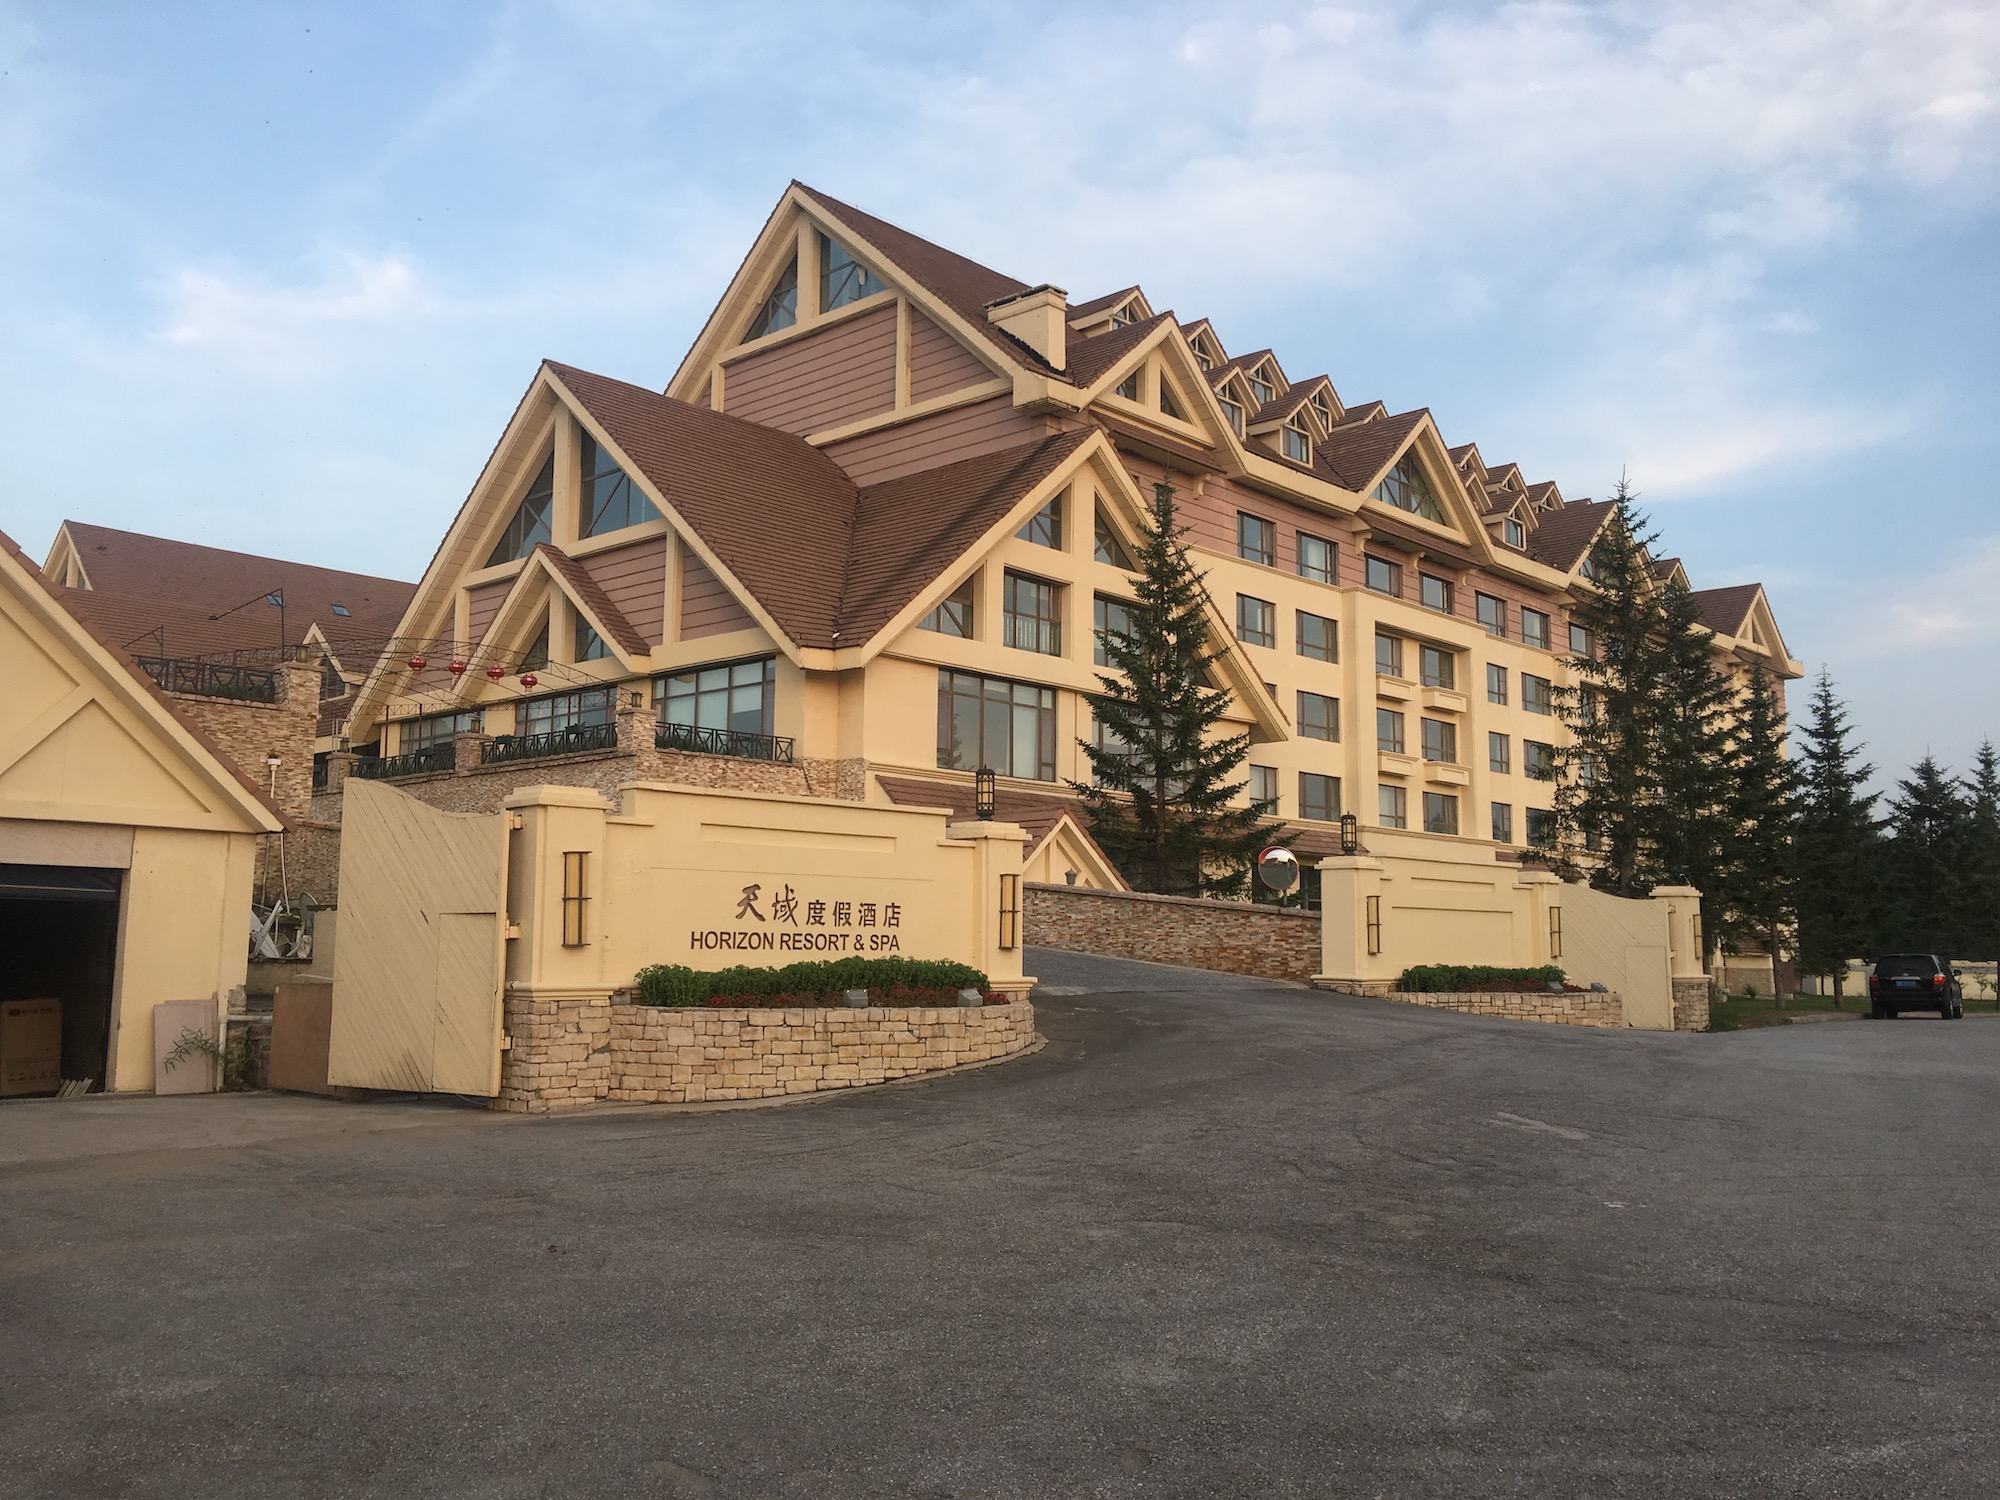 Our surprisingly well-amenitied hotel in the middle of nowhere.